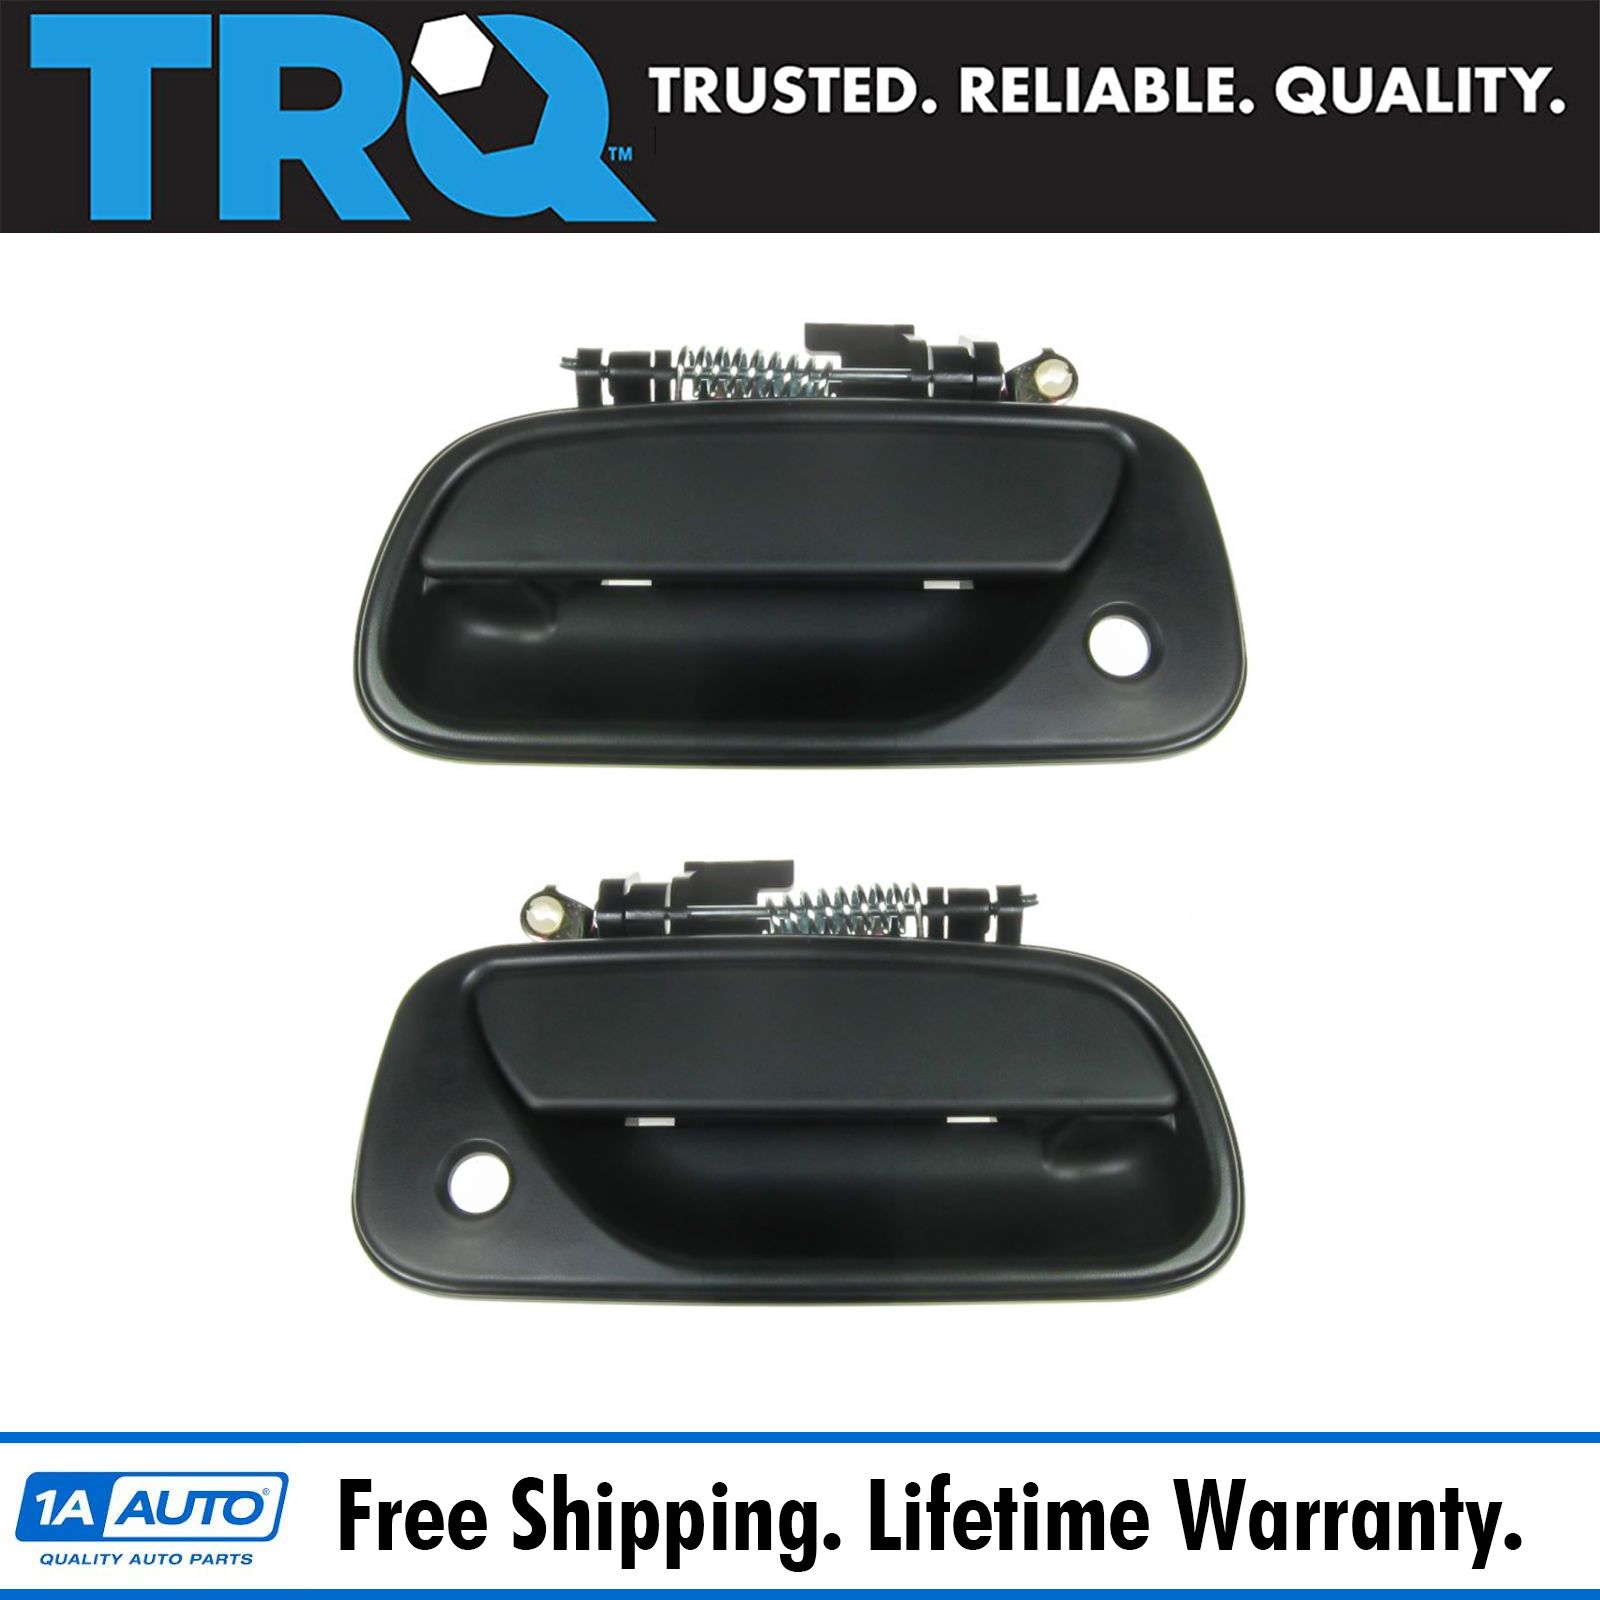 Outer Outside Exterior Door Handle Pair Set For 93 98 Toyota T100 Truck Pickup 191213327432 Ebay